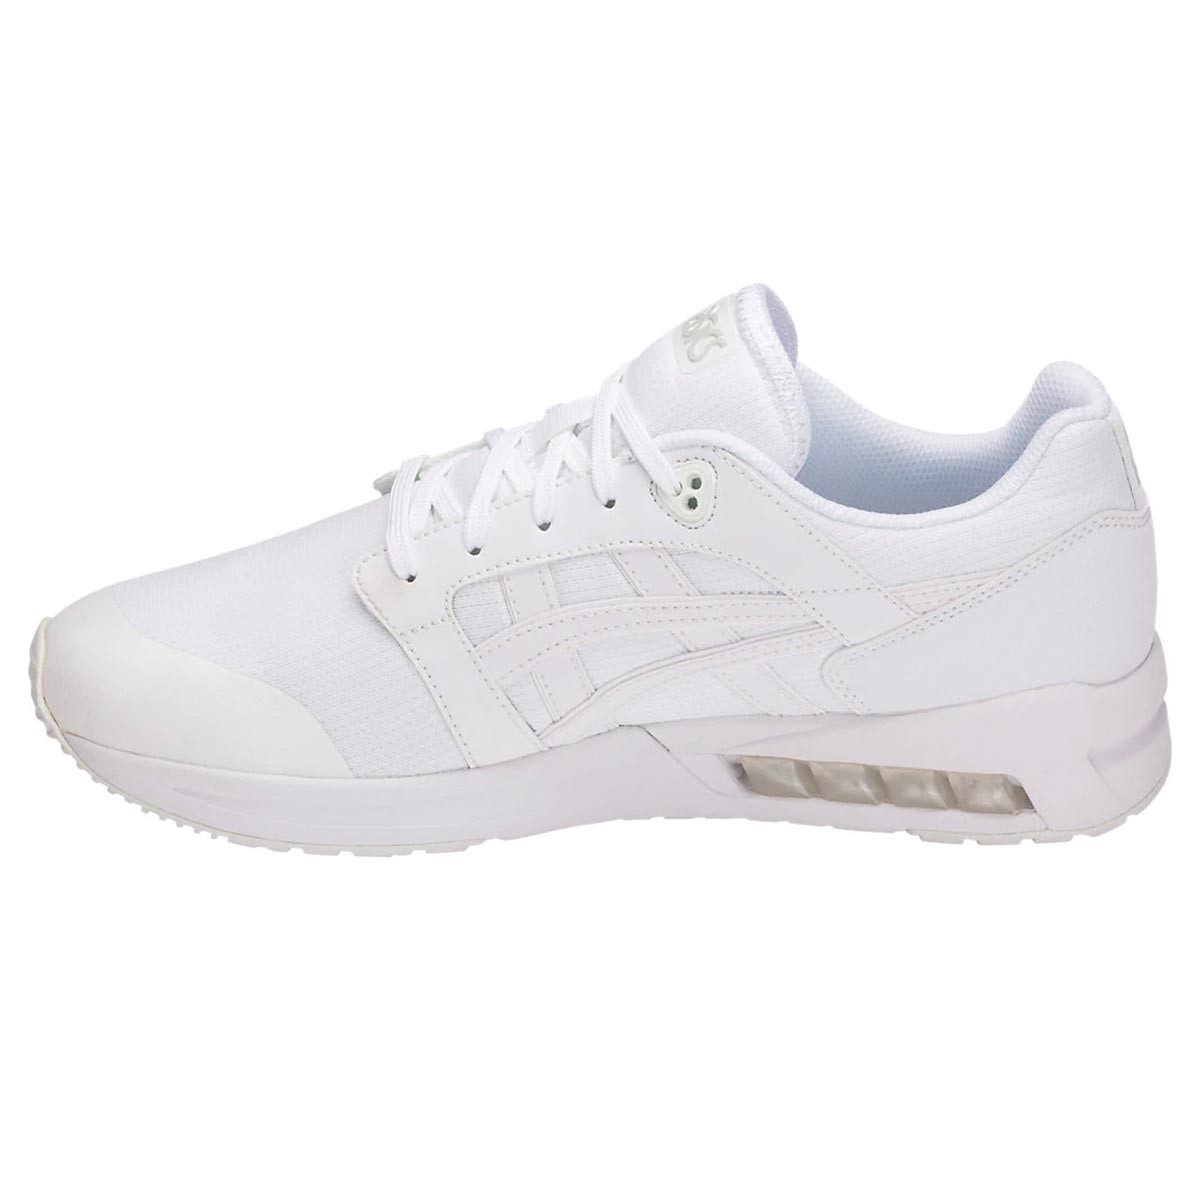 regarder 537b2 88757 Baskets Gel-quantum 360 5 Blanc/bleu / Asics - Brentiny Paris